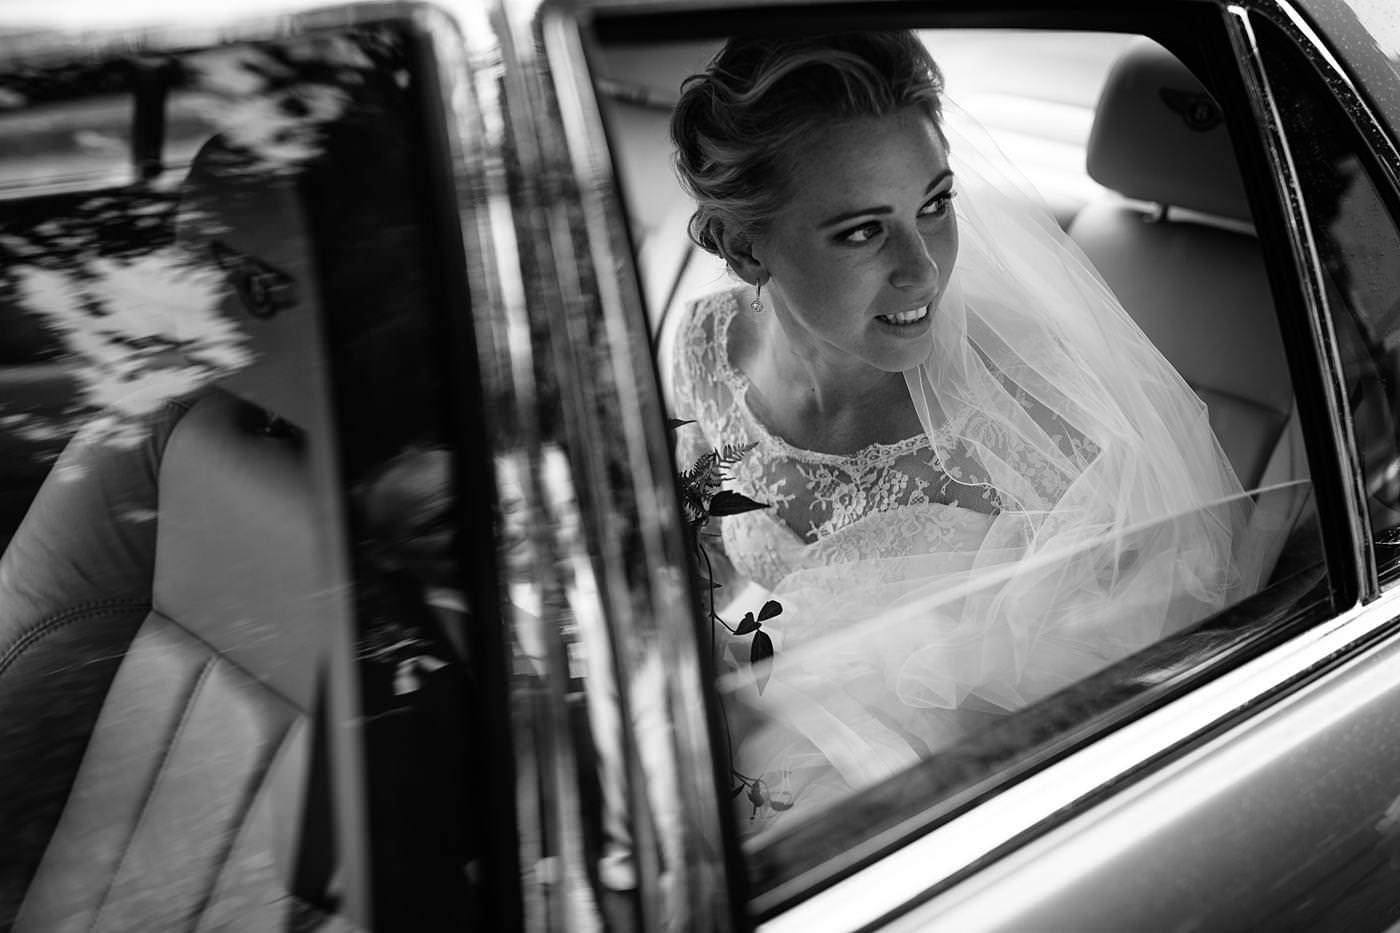 Arrival of bride taken by North Wales Wedding Photographer Phil Barrett